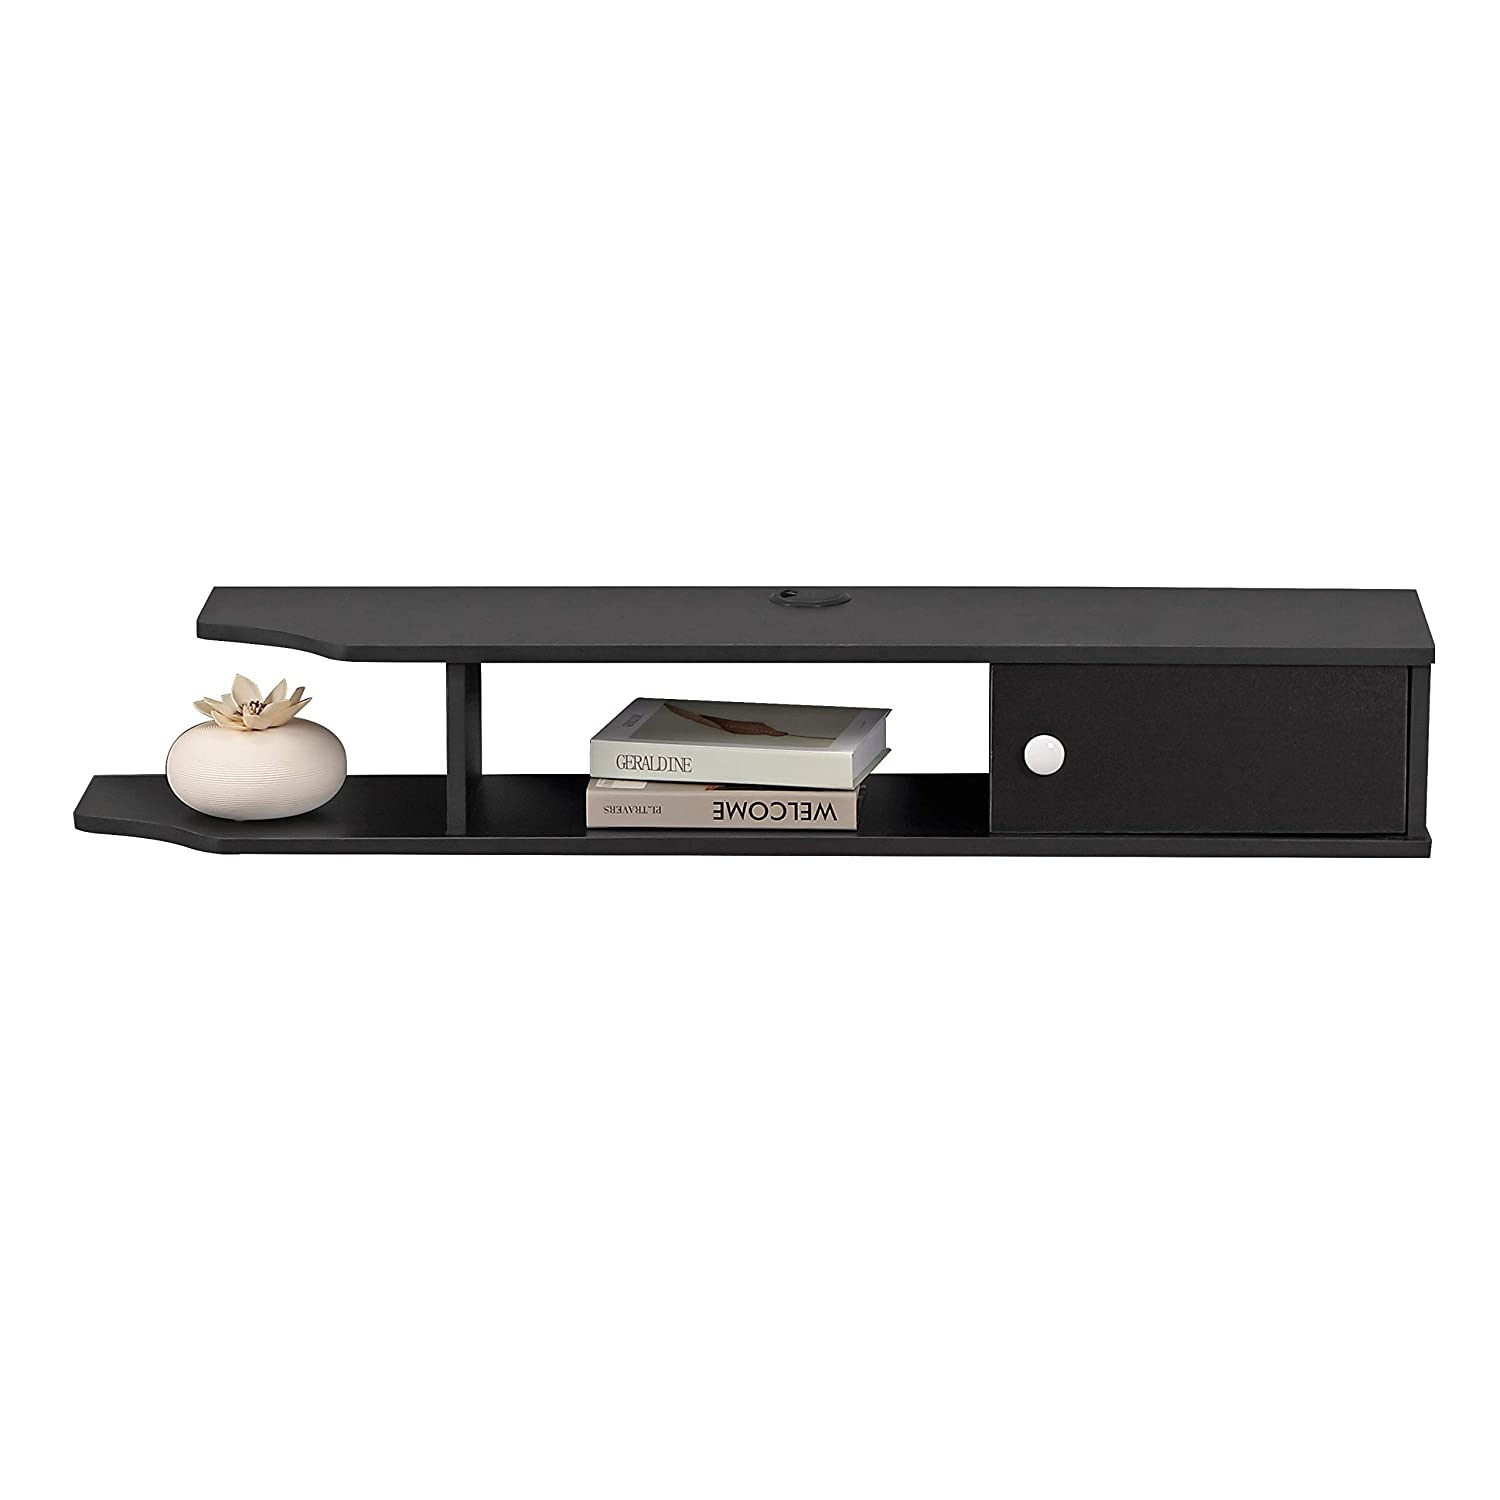 Bizzoelife Floating Media Console TV Stand Wall Mounted TV Console 43 Inches for Cable Boxes Router DVD Player